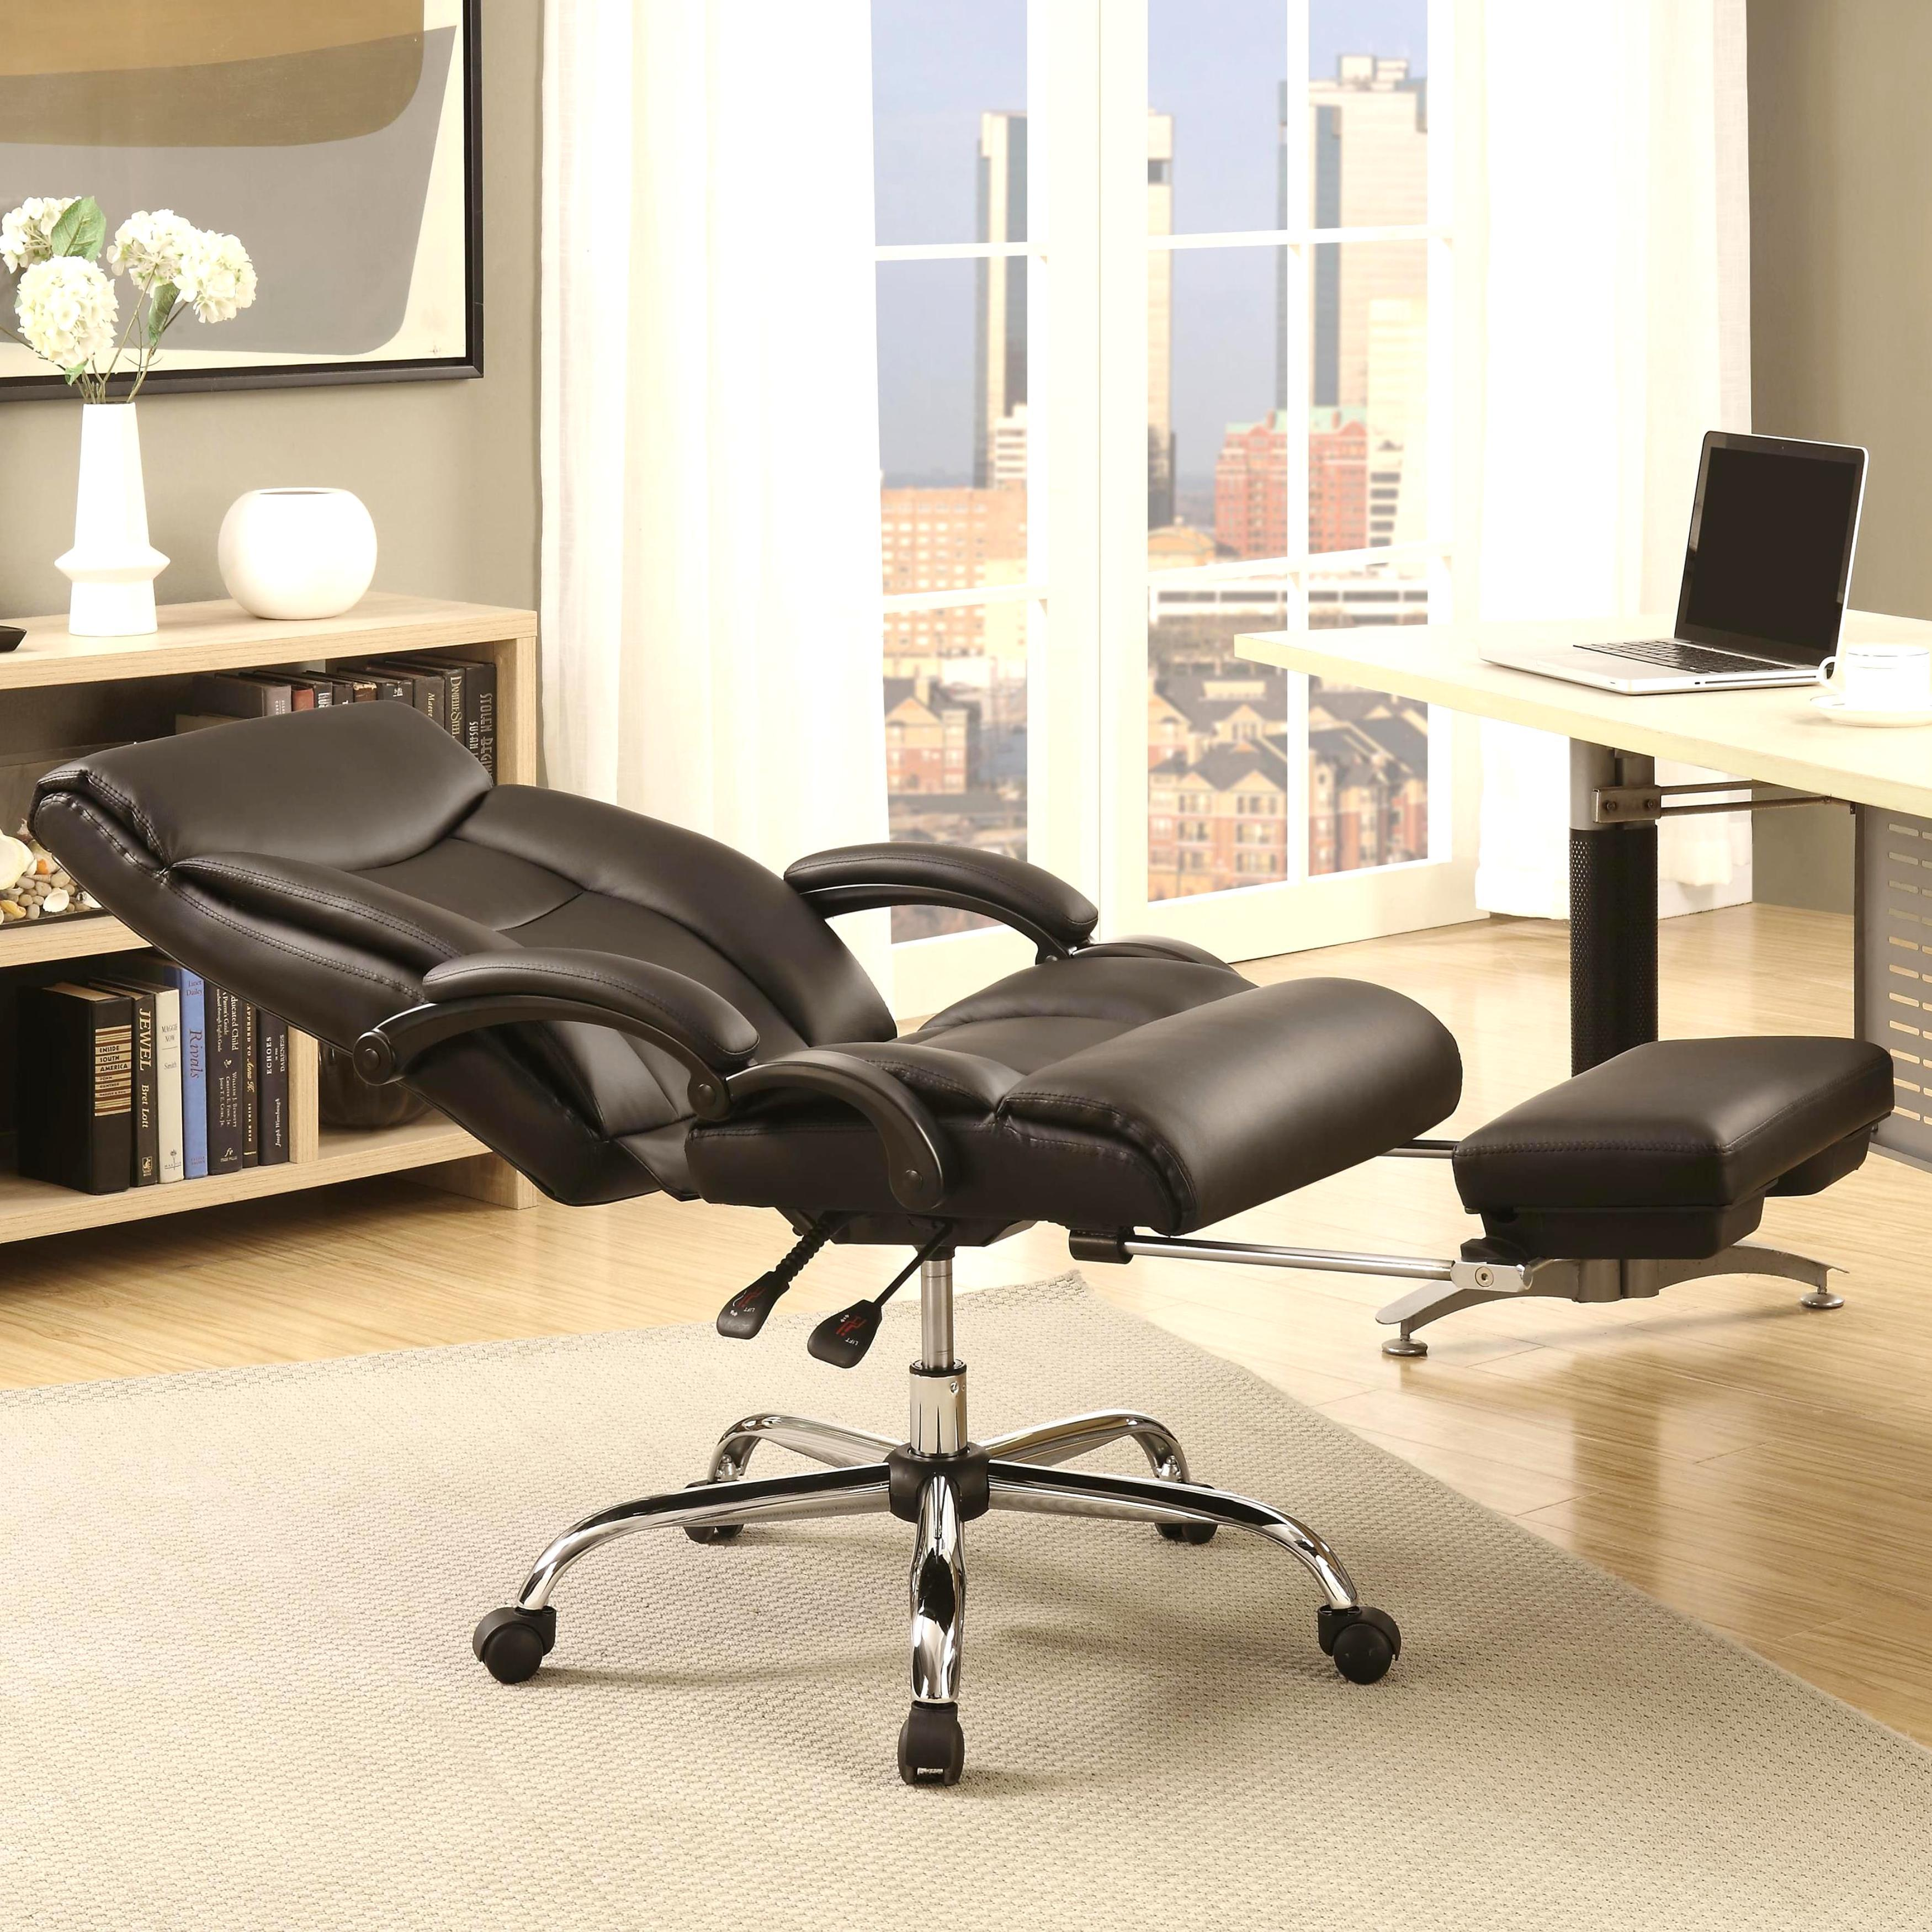 Ordinaire Executive Adjustable Reclining Office Chair With Incremental Footrest